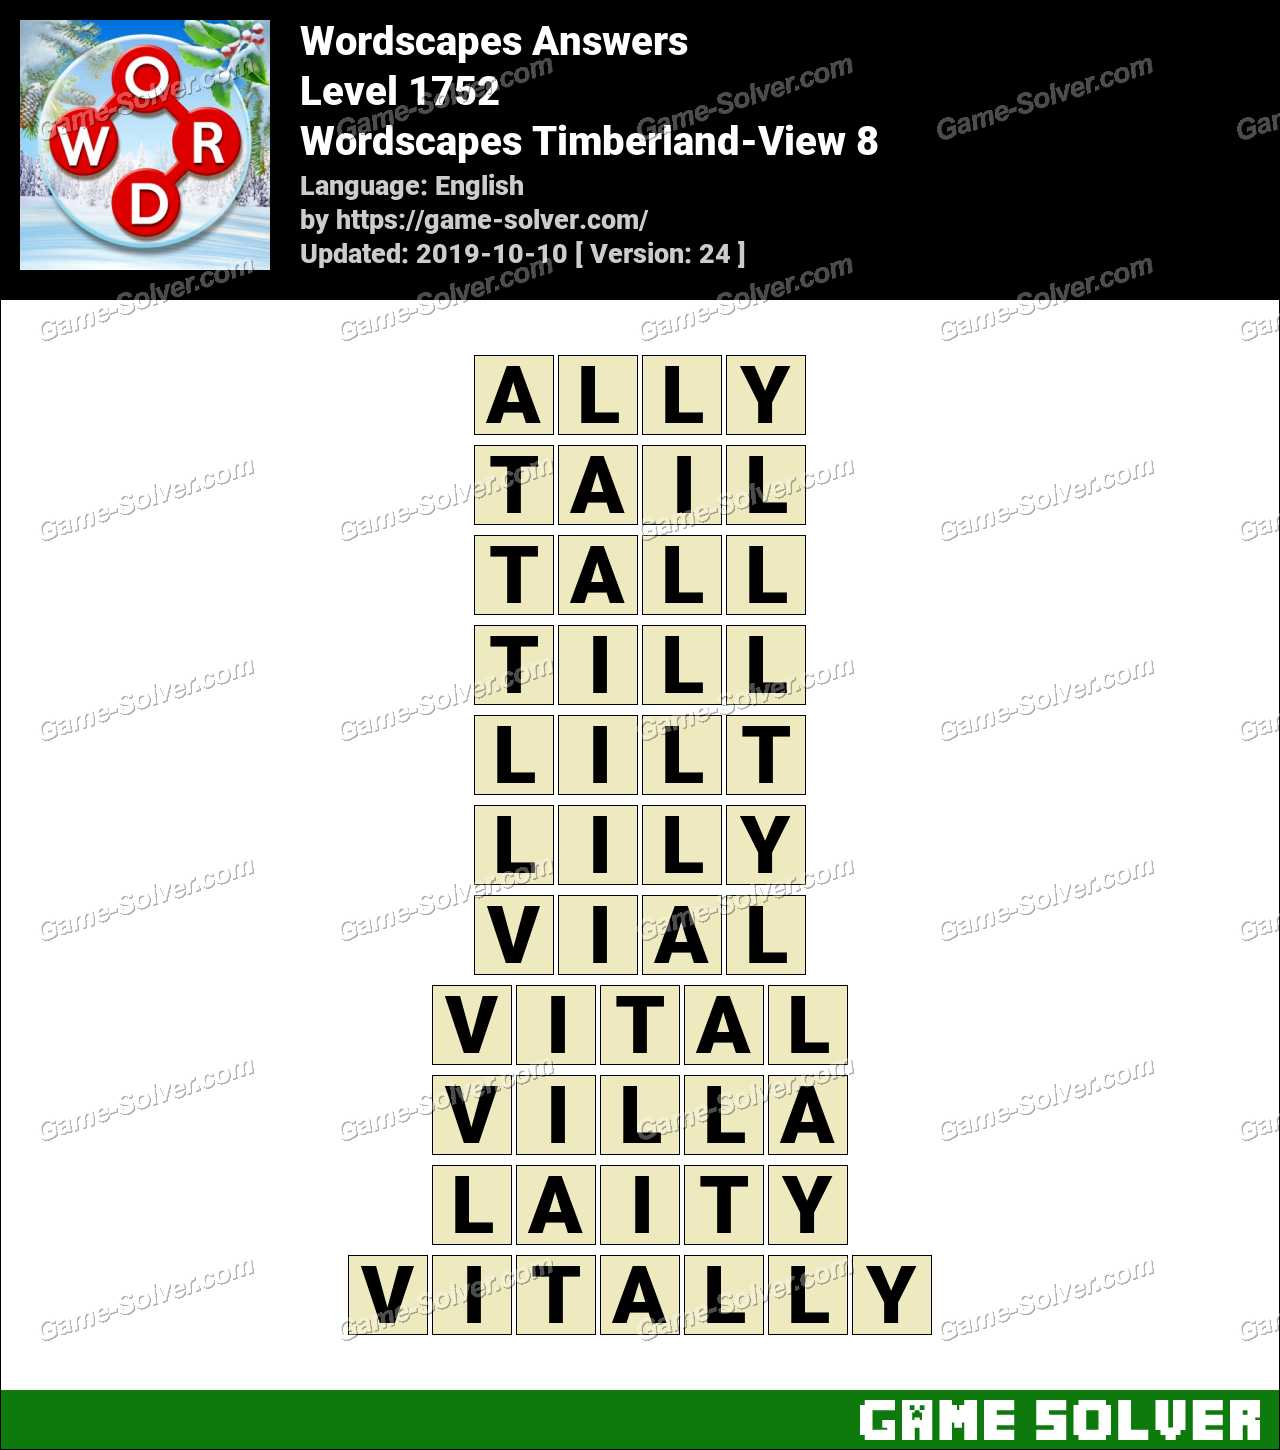 Wordscapes Timberland-View 8 Answers